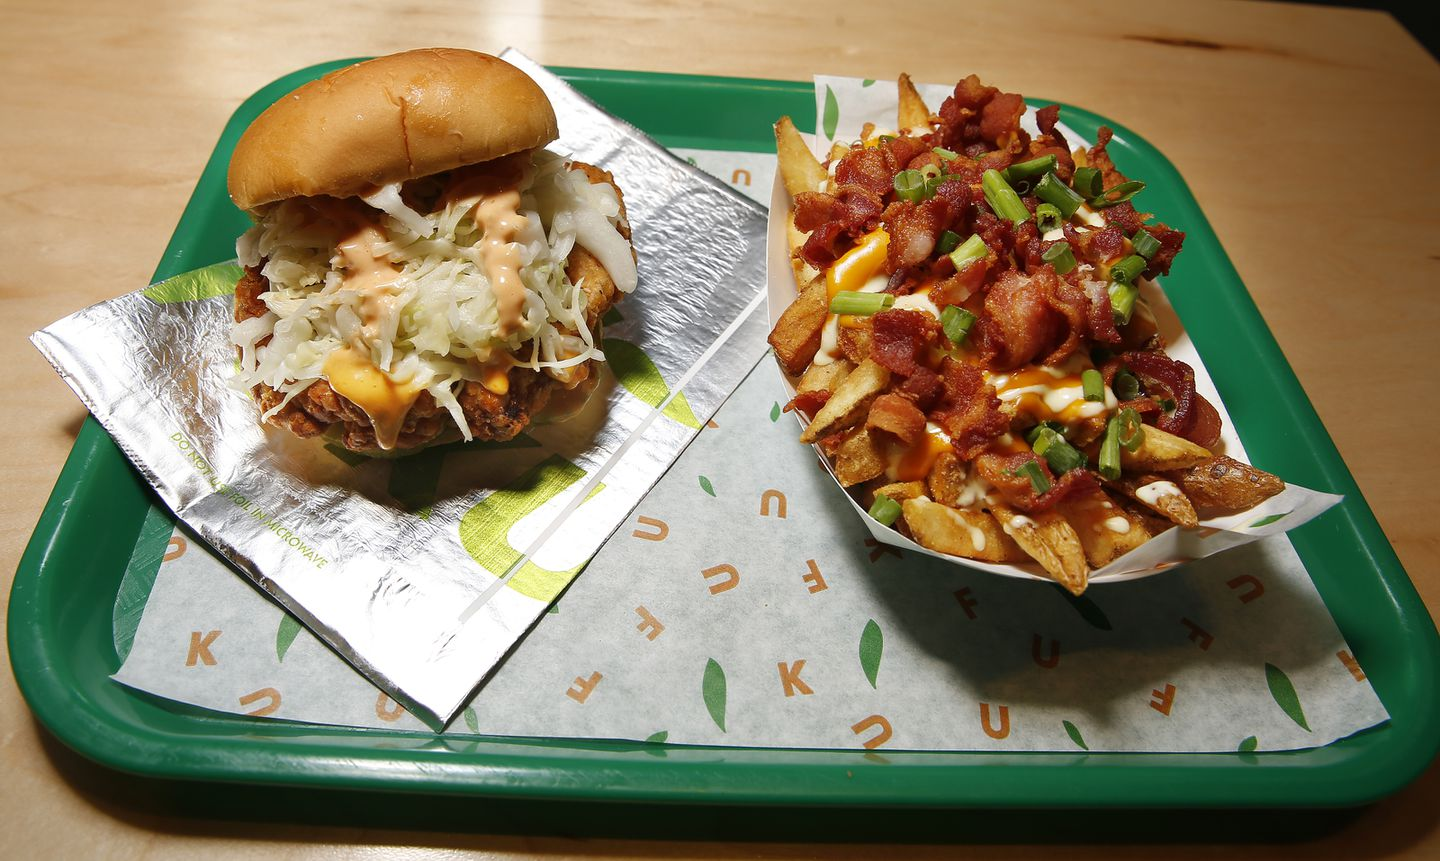 The Loaded Fries and Knockout Sandwich at Fuku.